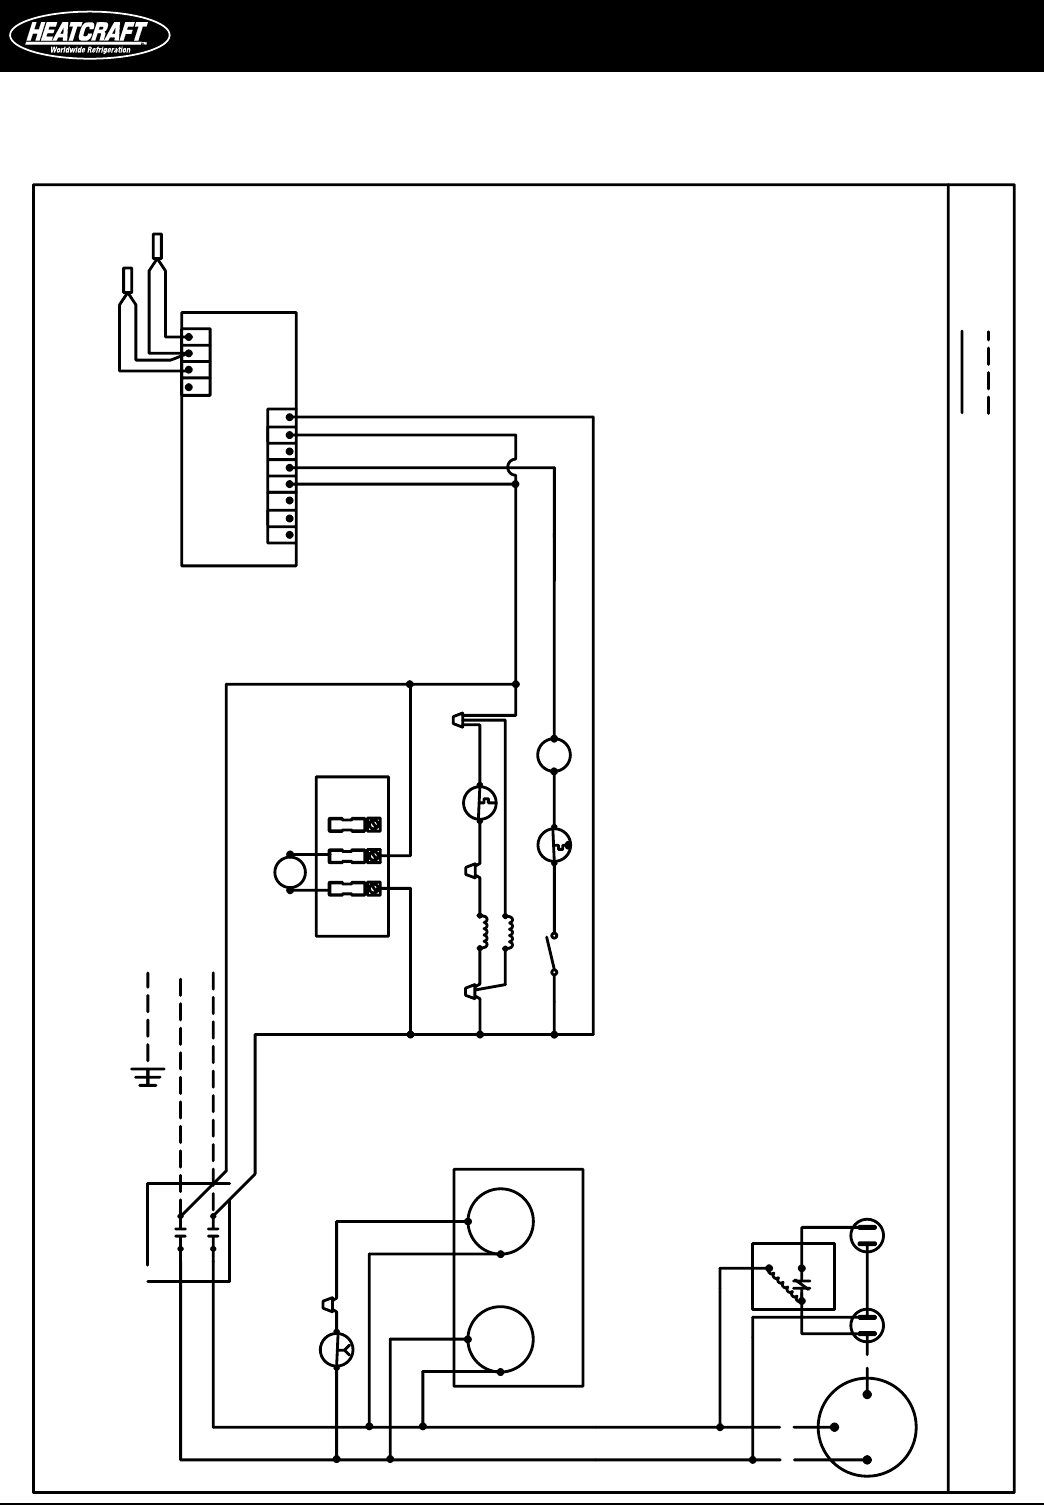 heatcraft wiring diagrams with Heatcraft Wiring Diagram on Bohn Wiring Diagrams in addition Refrigeration Pump Down Schematic together with Evaporator Coil Wiring Diagram as well Heatcraft Wiring Diagram also Norlake Wiring Diagrams.